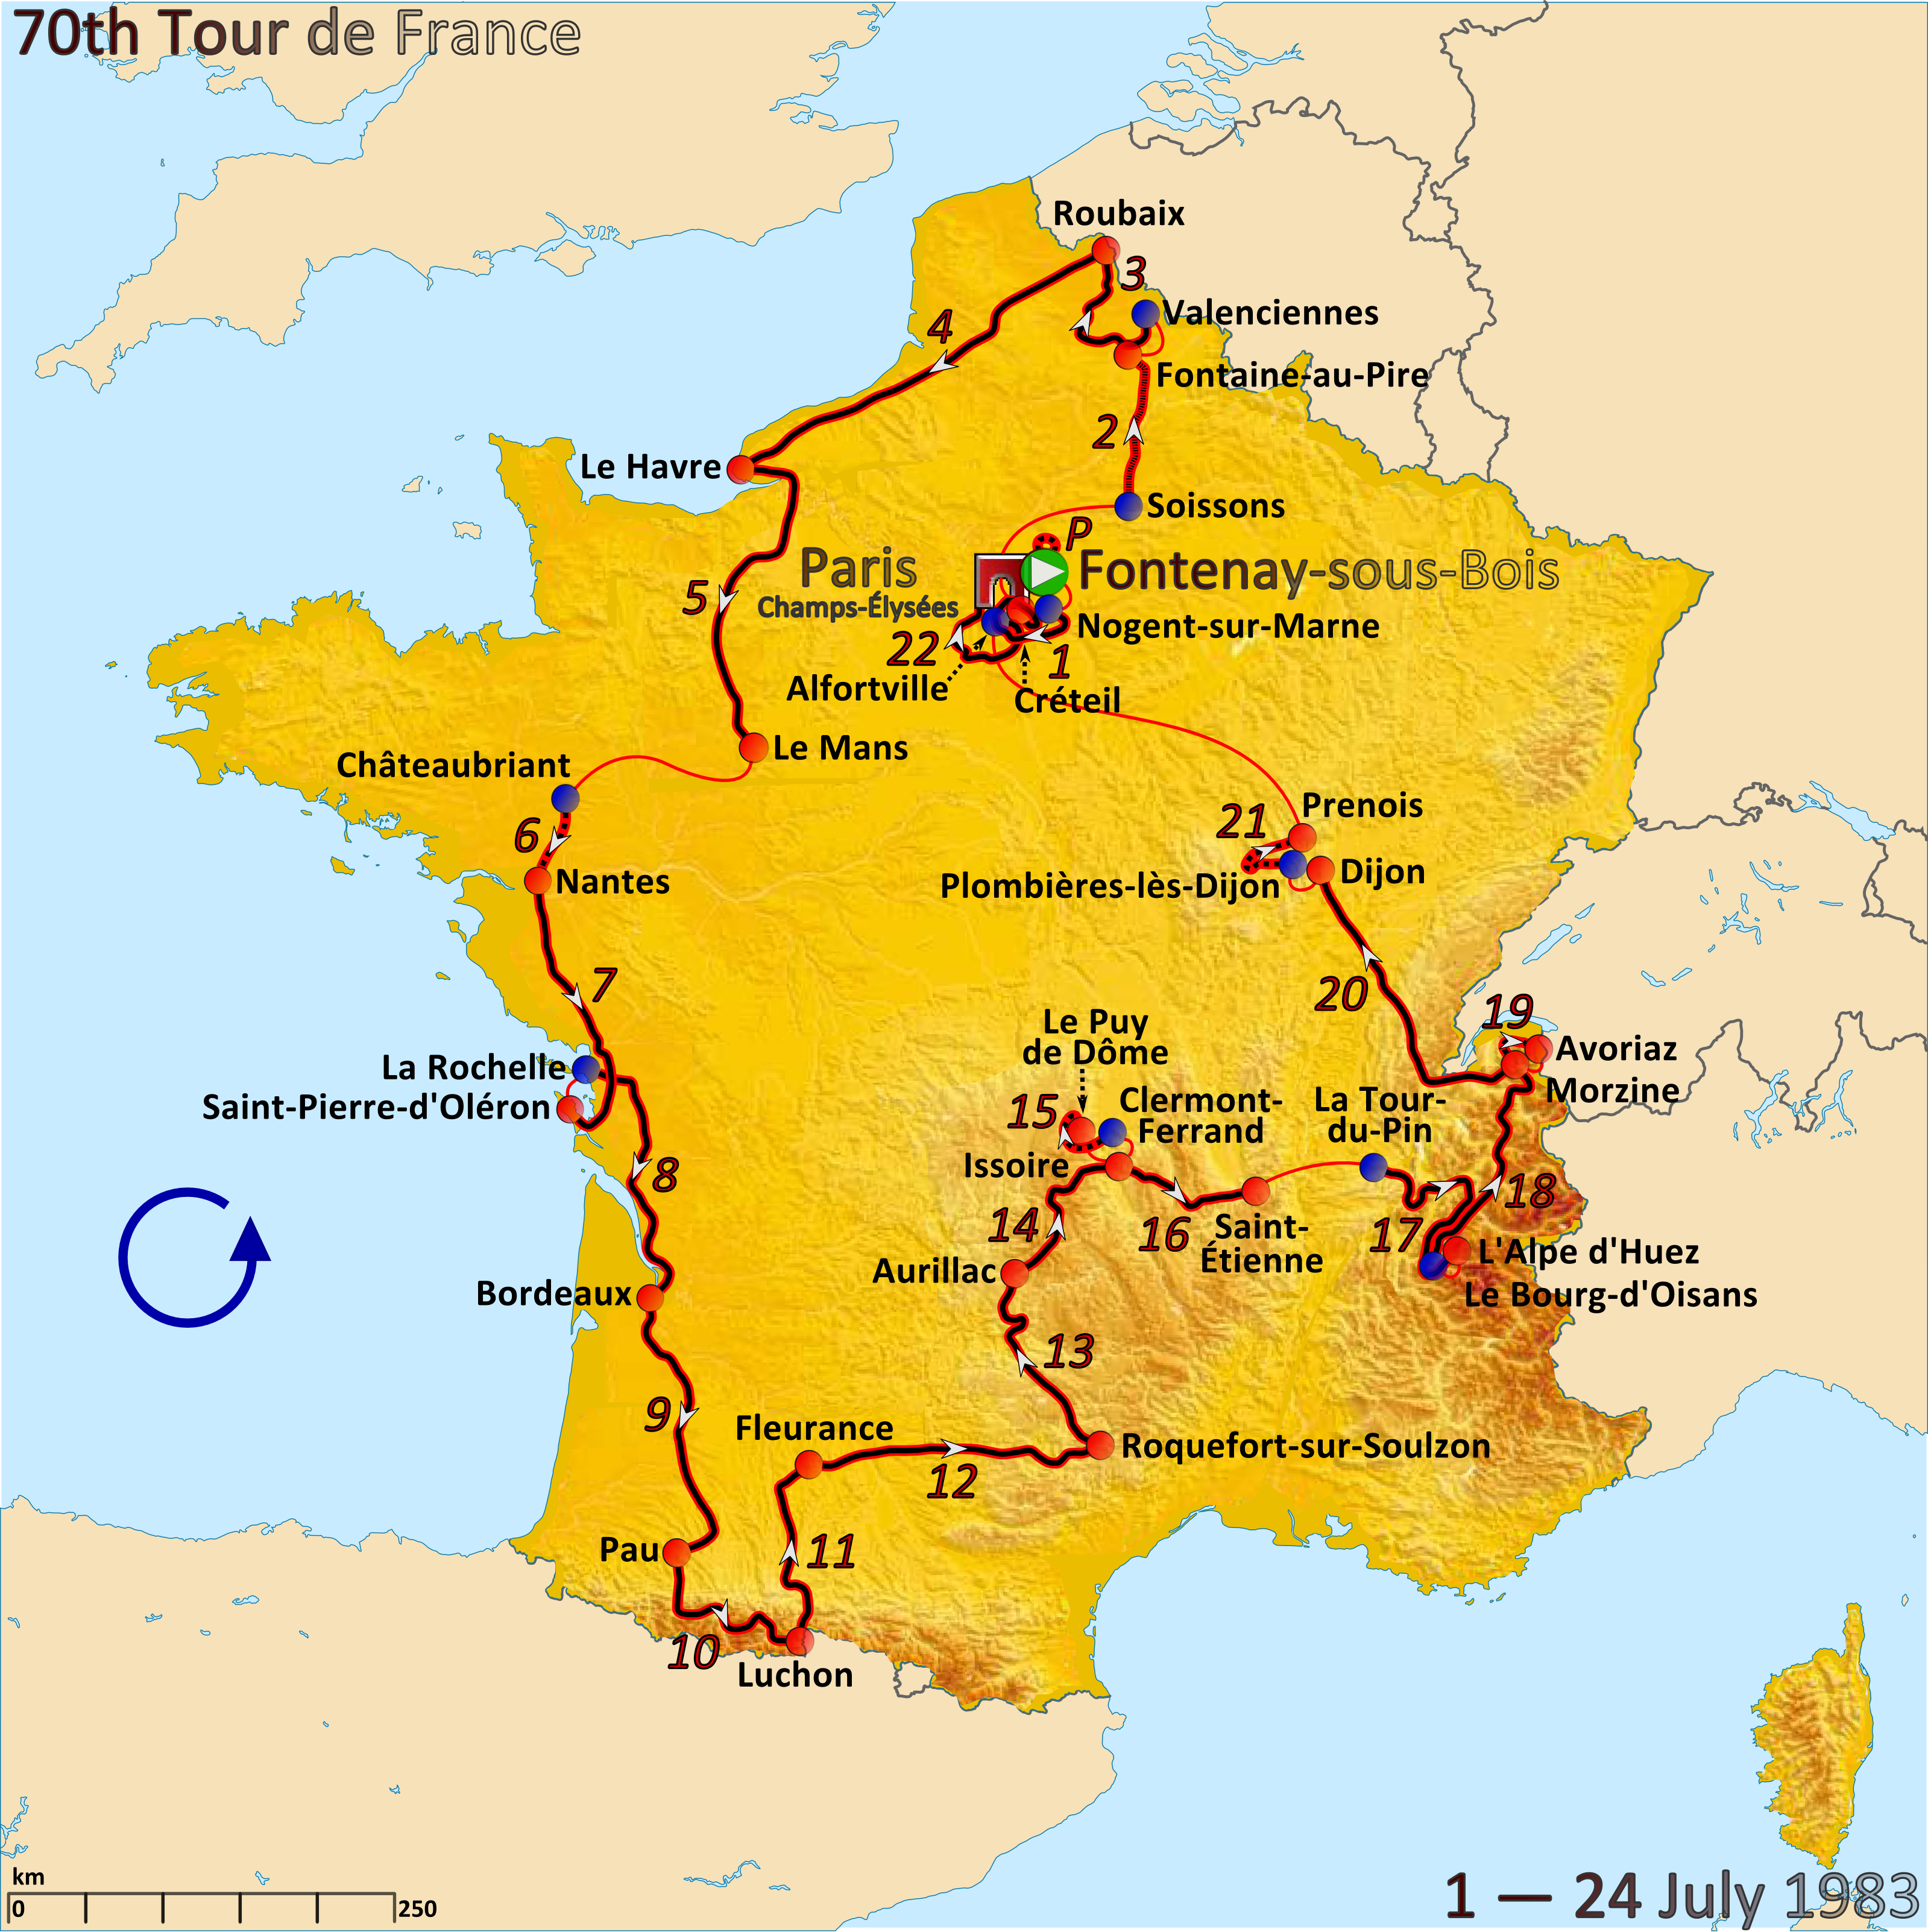 FileRoute of the 1983 Tour de Francepng Wikimedia Commons